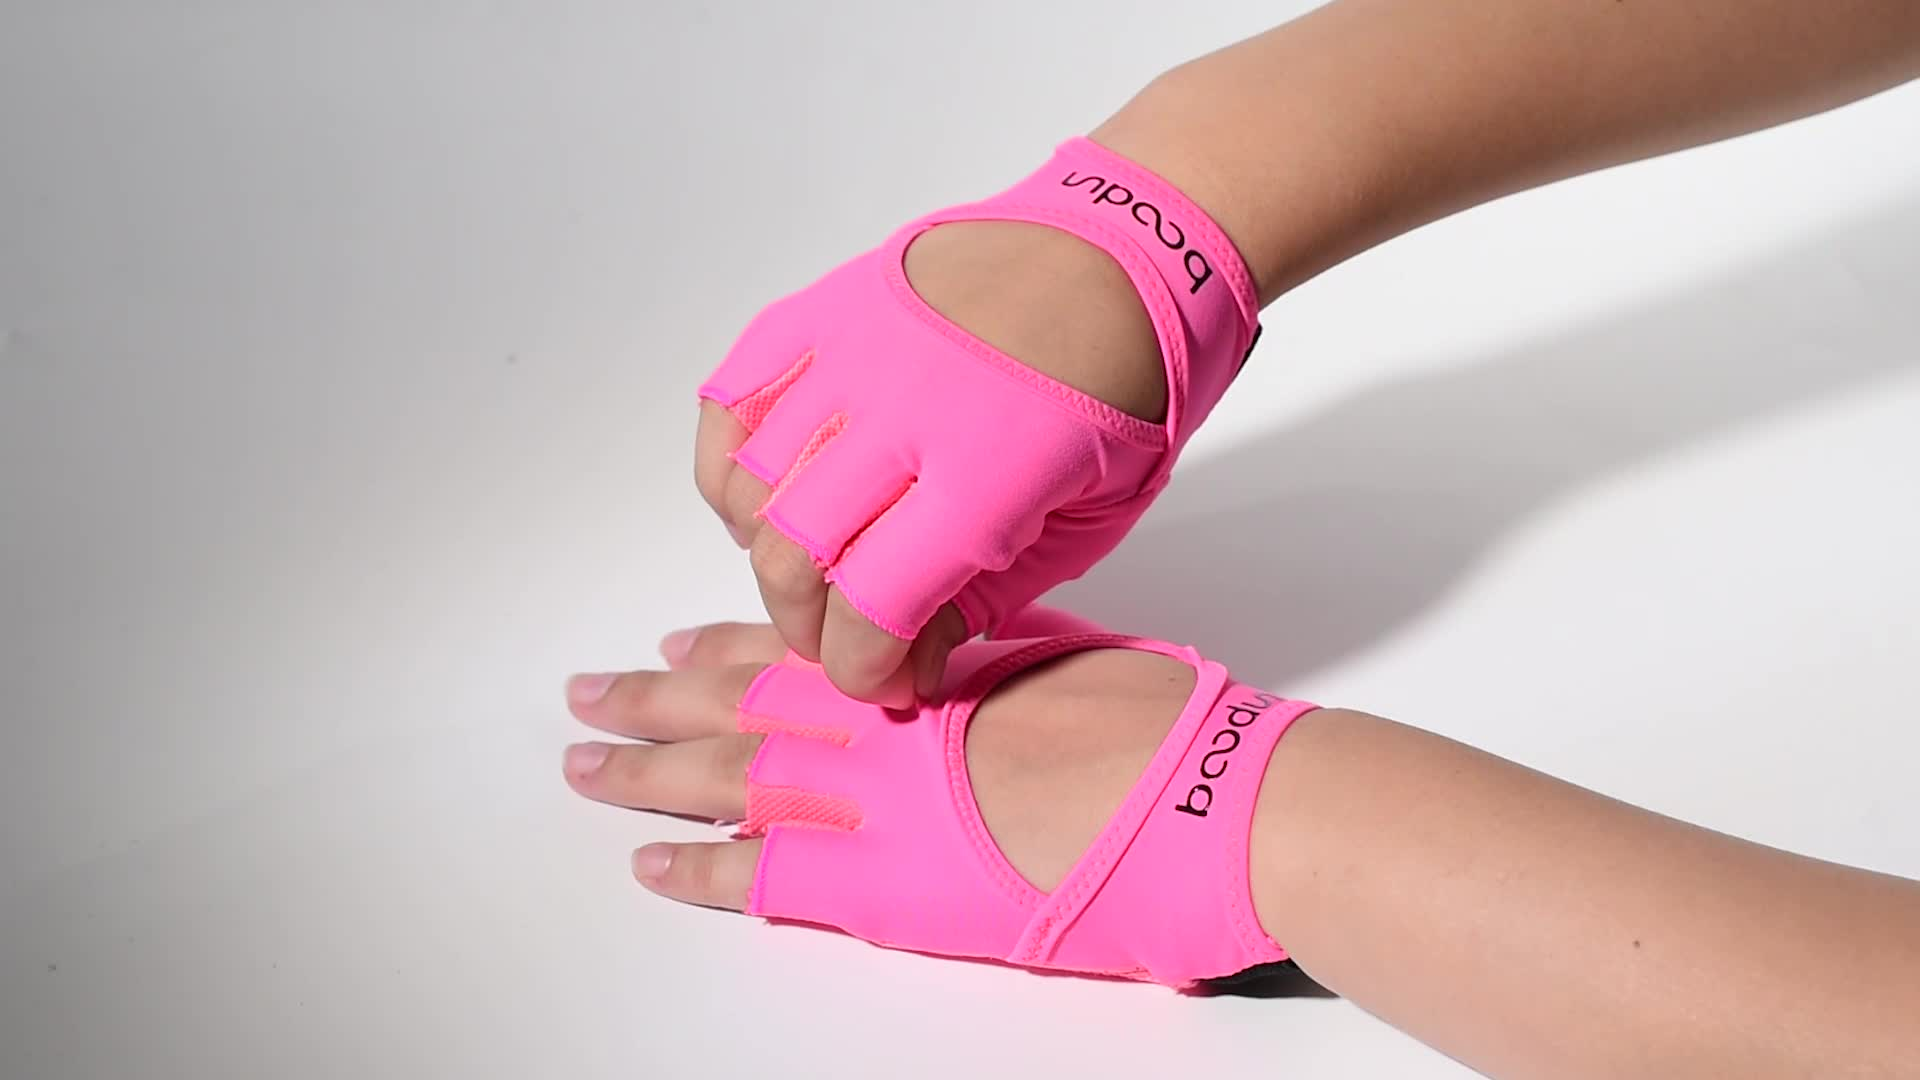 New Fashion Low Price Weight Lifting Gloves customized Breathable gym sports Gloves Fitness Manufacturer In China